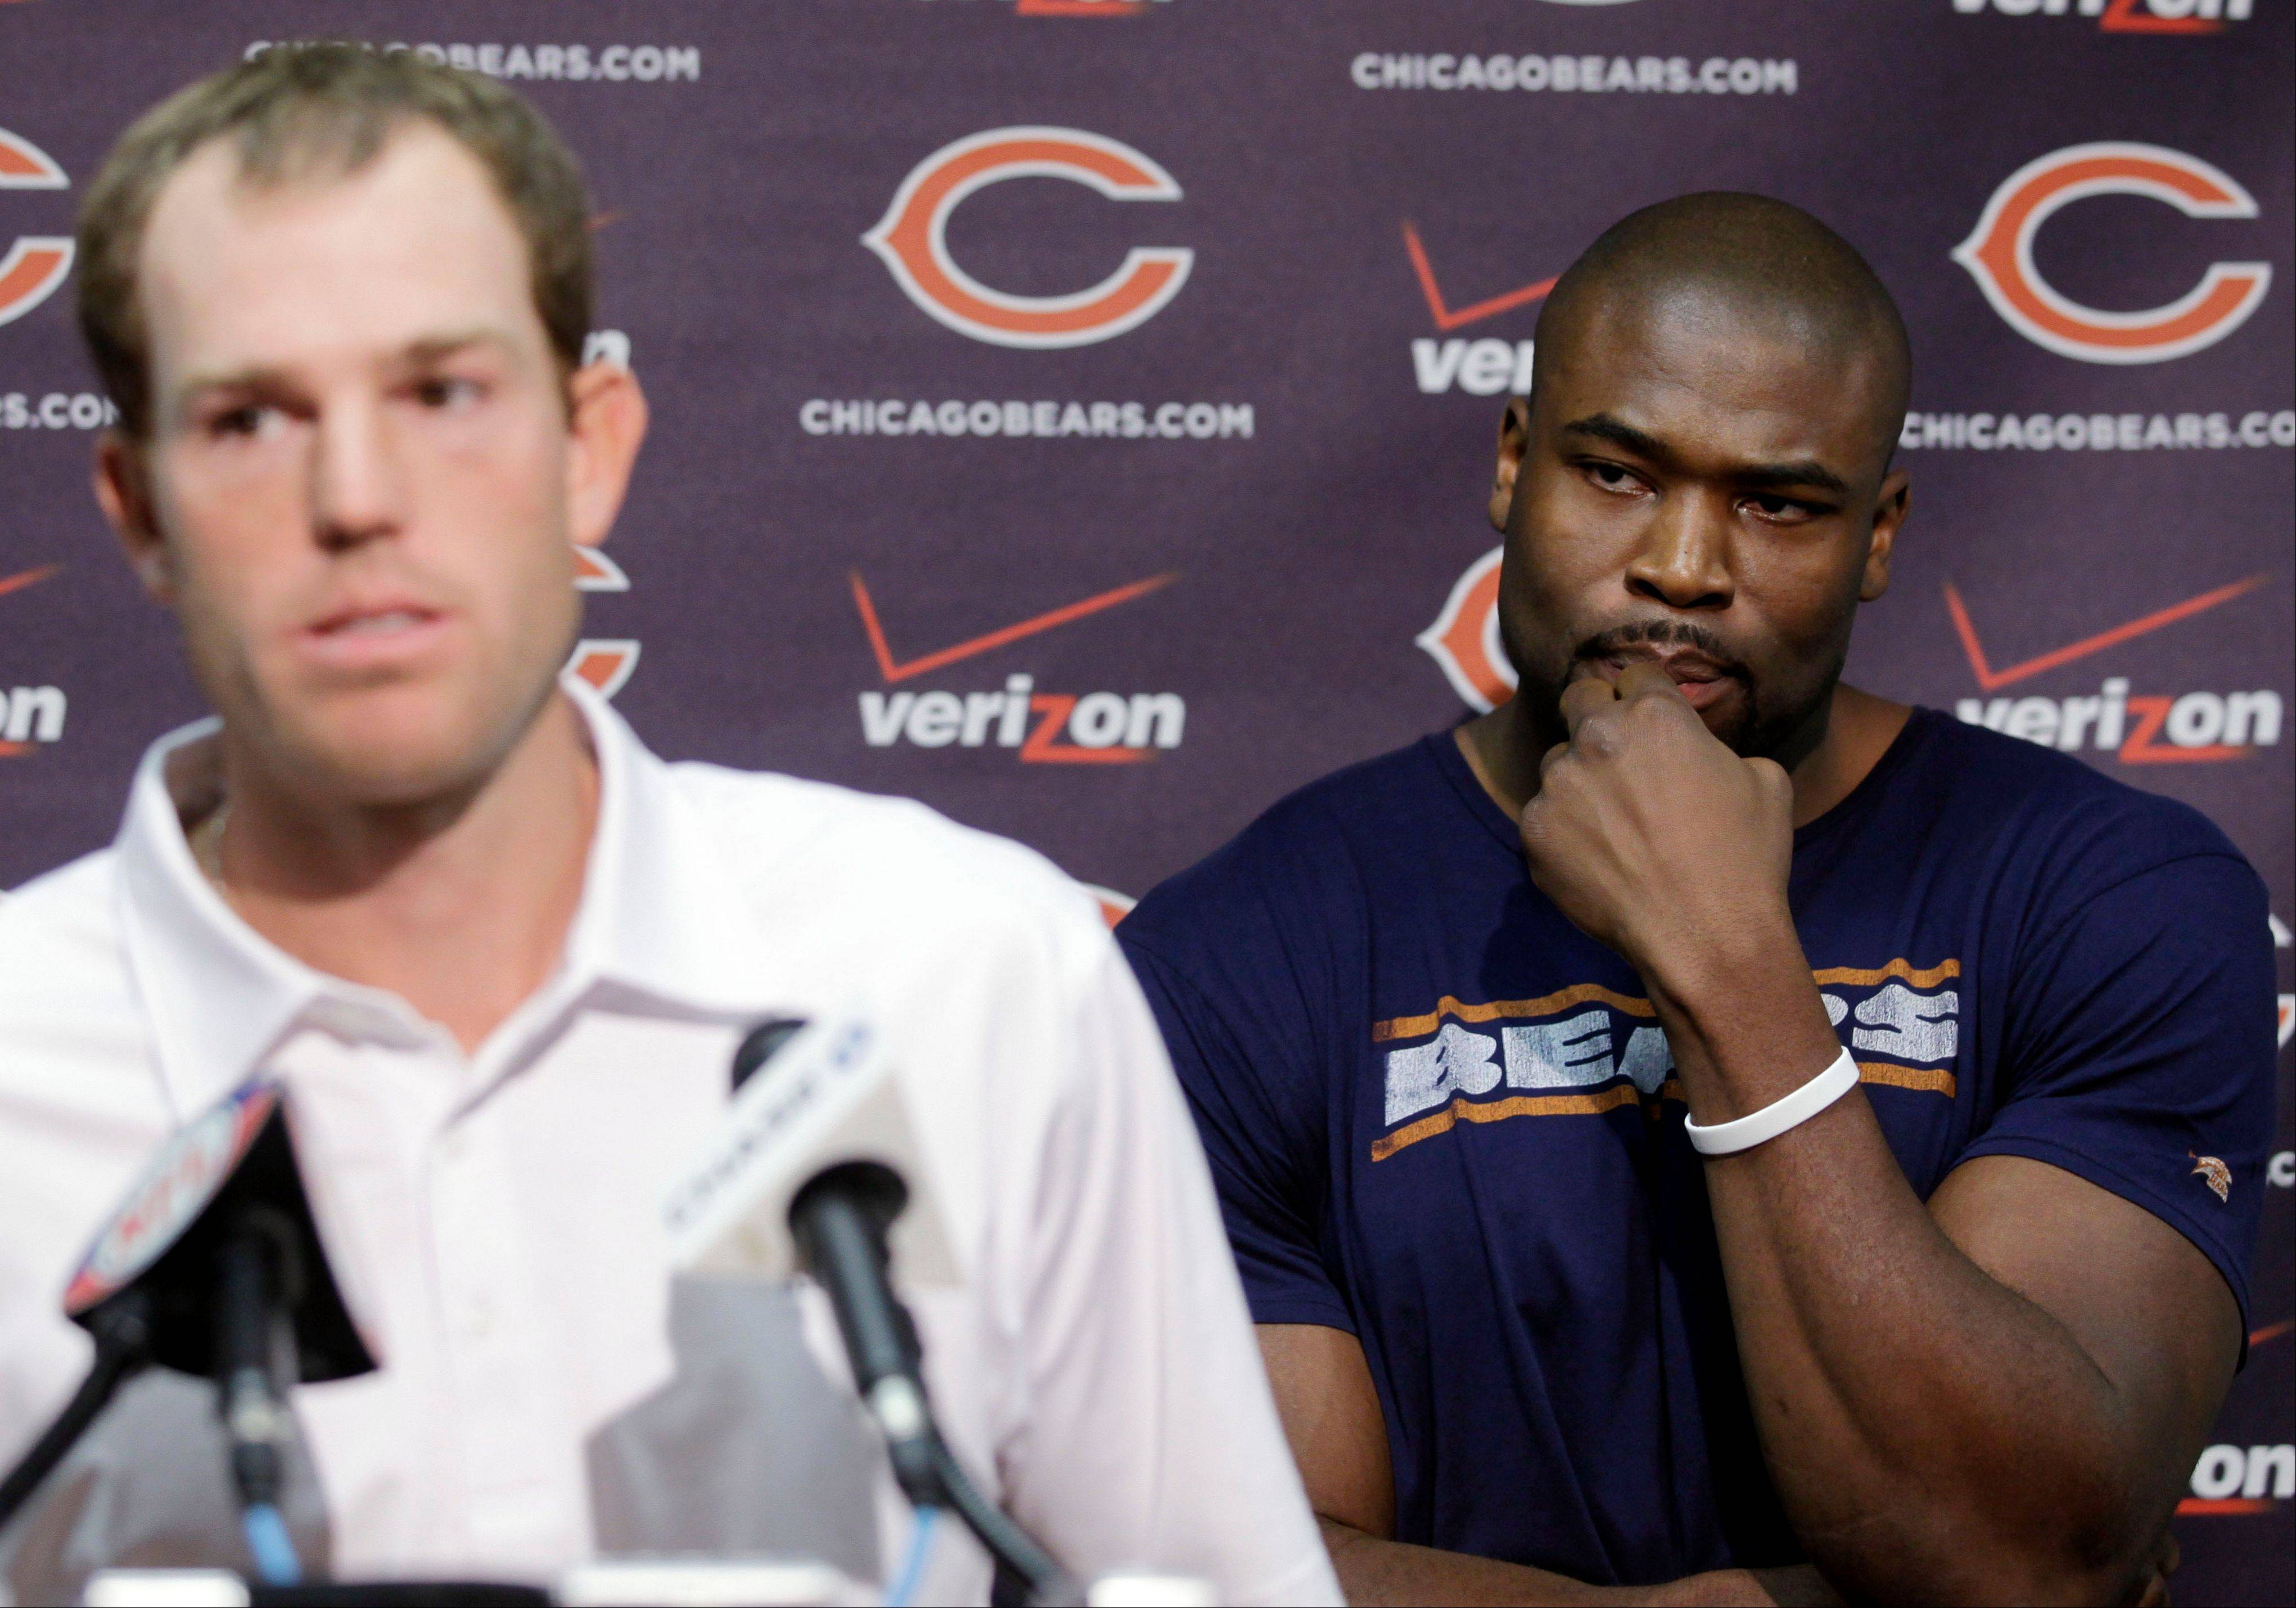 Bears defensive lineman Israel Idonije, right, listens to Robbie Gould speaks at a news conference at Halas Hall in Lake Forest on Tuesday. Both players insist there won't be any issues with teammates reporting to camp out of shape.